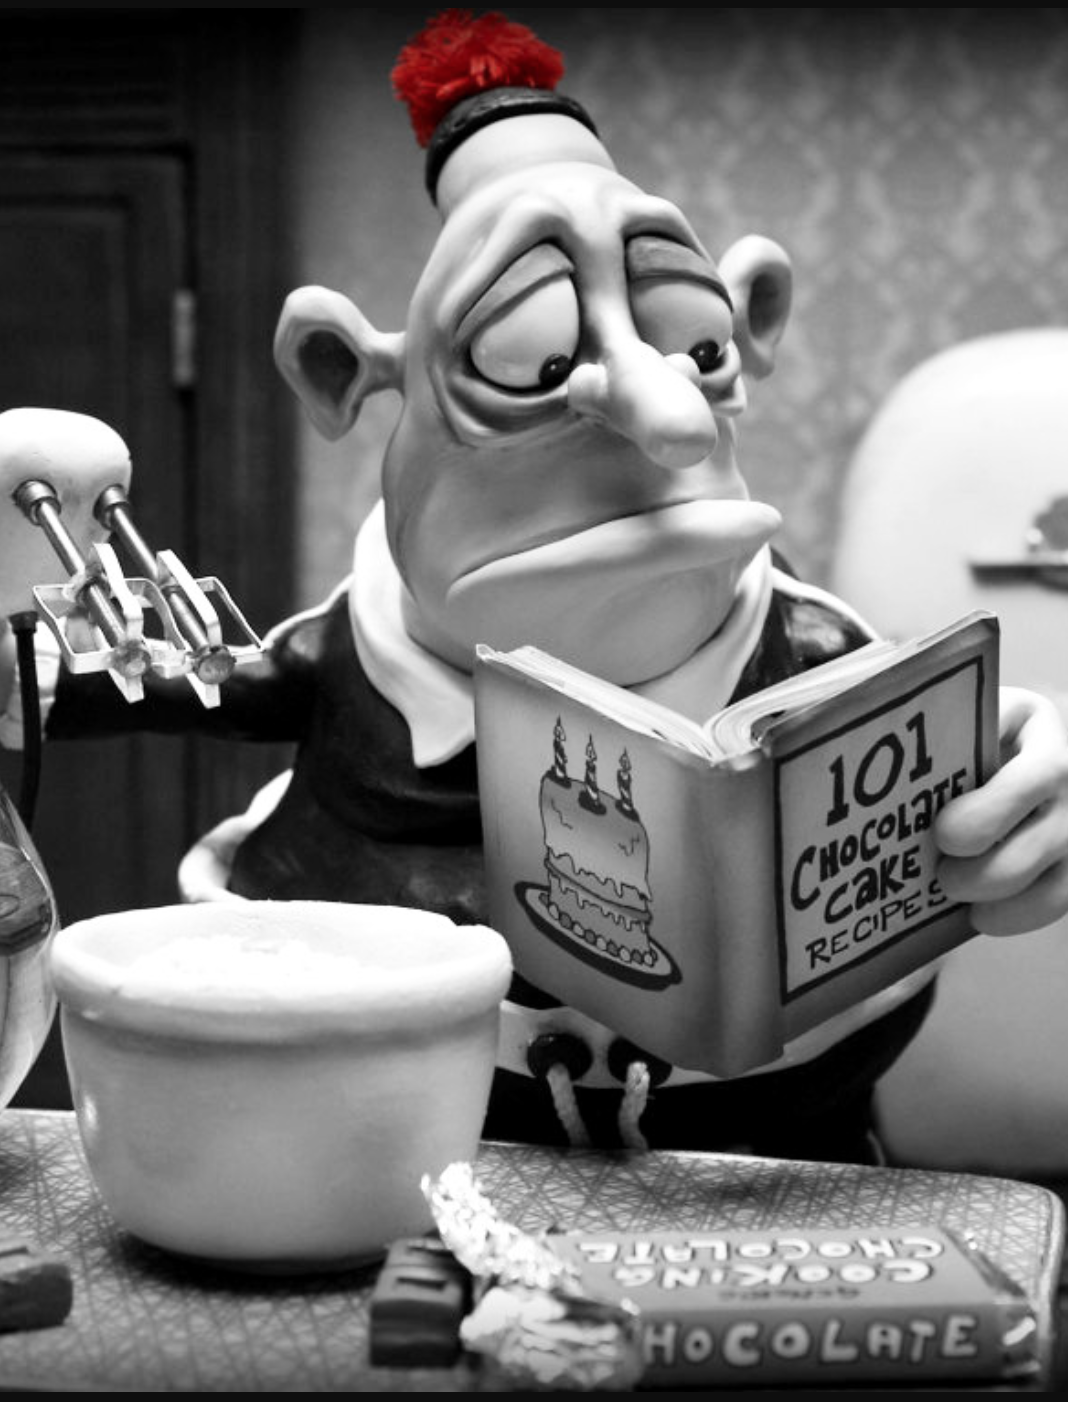 Mary And Max 2009 By Adam Elliot Review Mary And Max Peliculas Clasicas Animacion